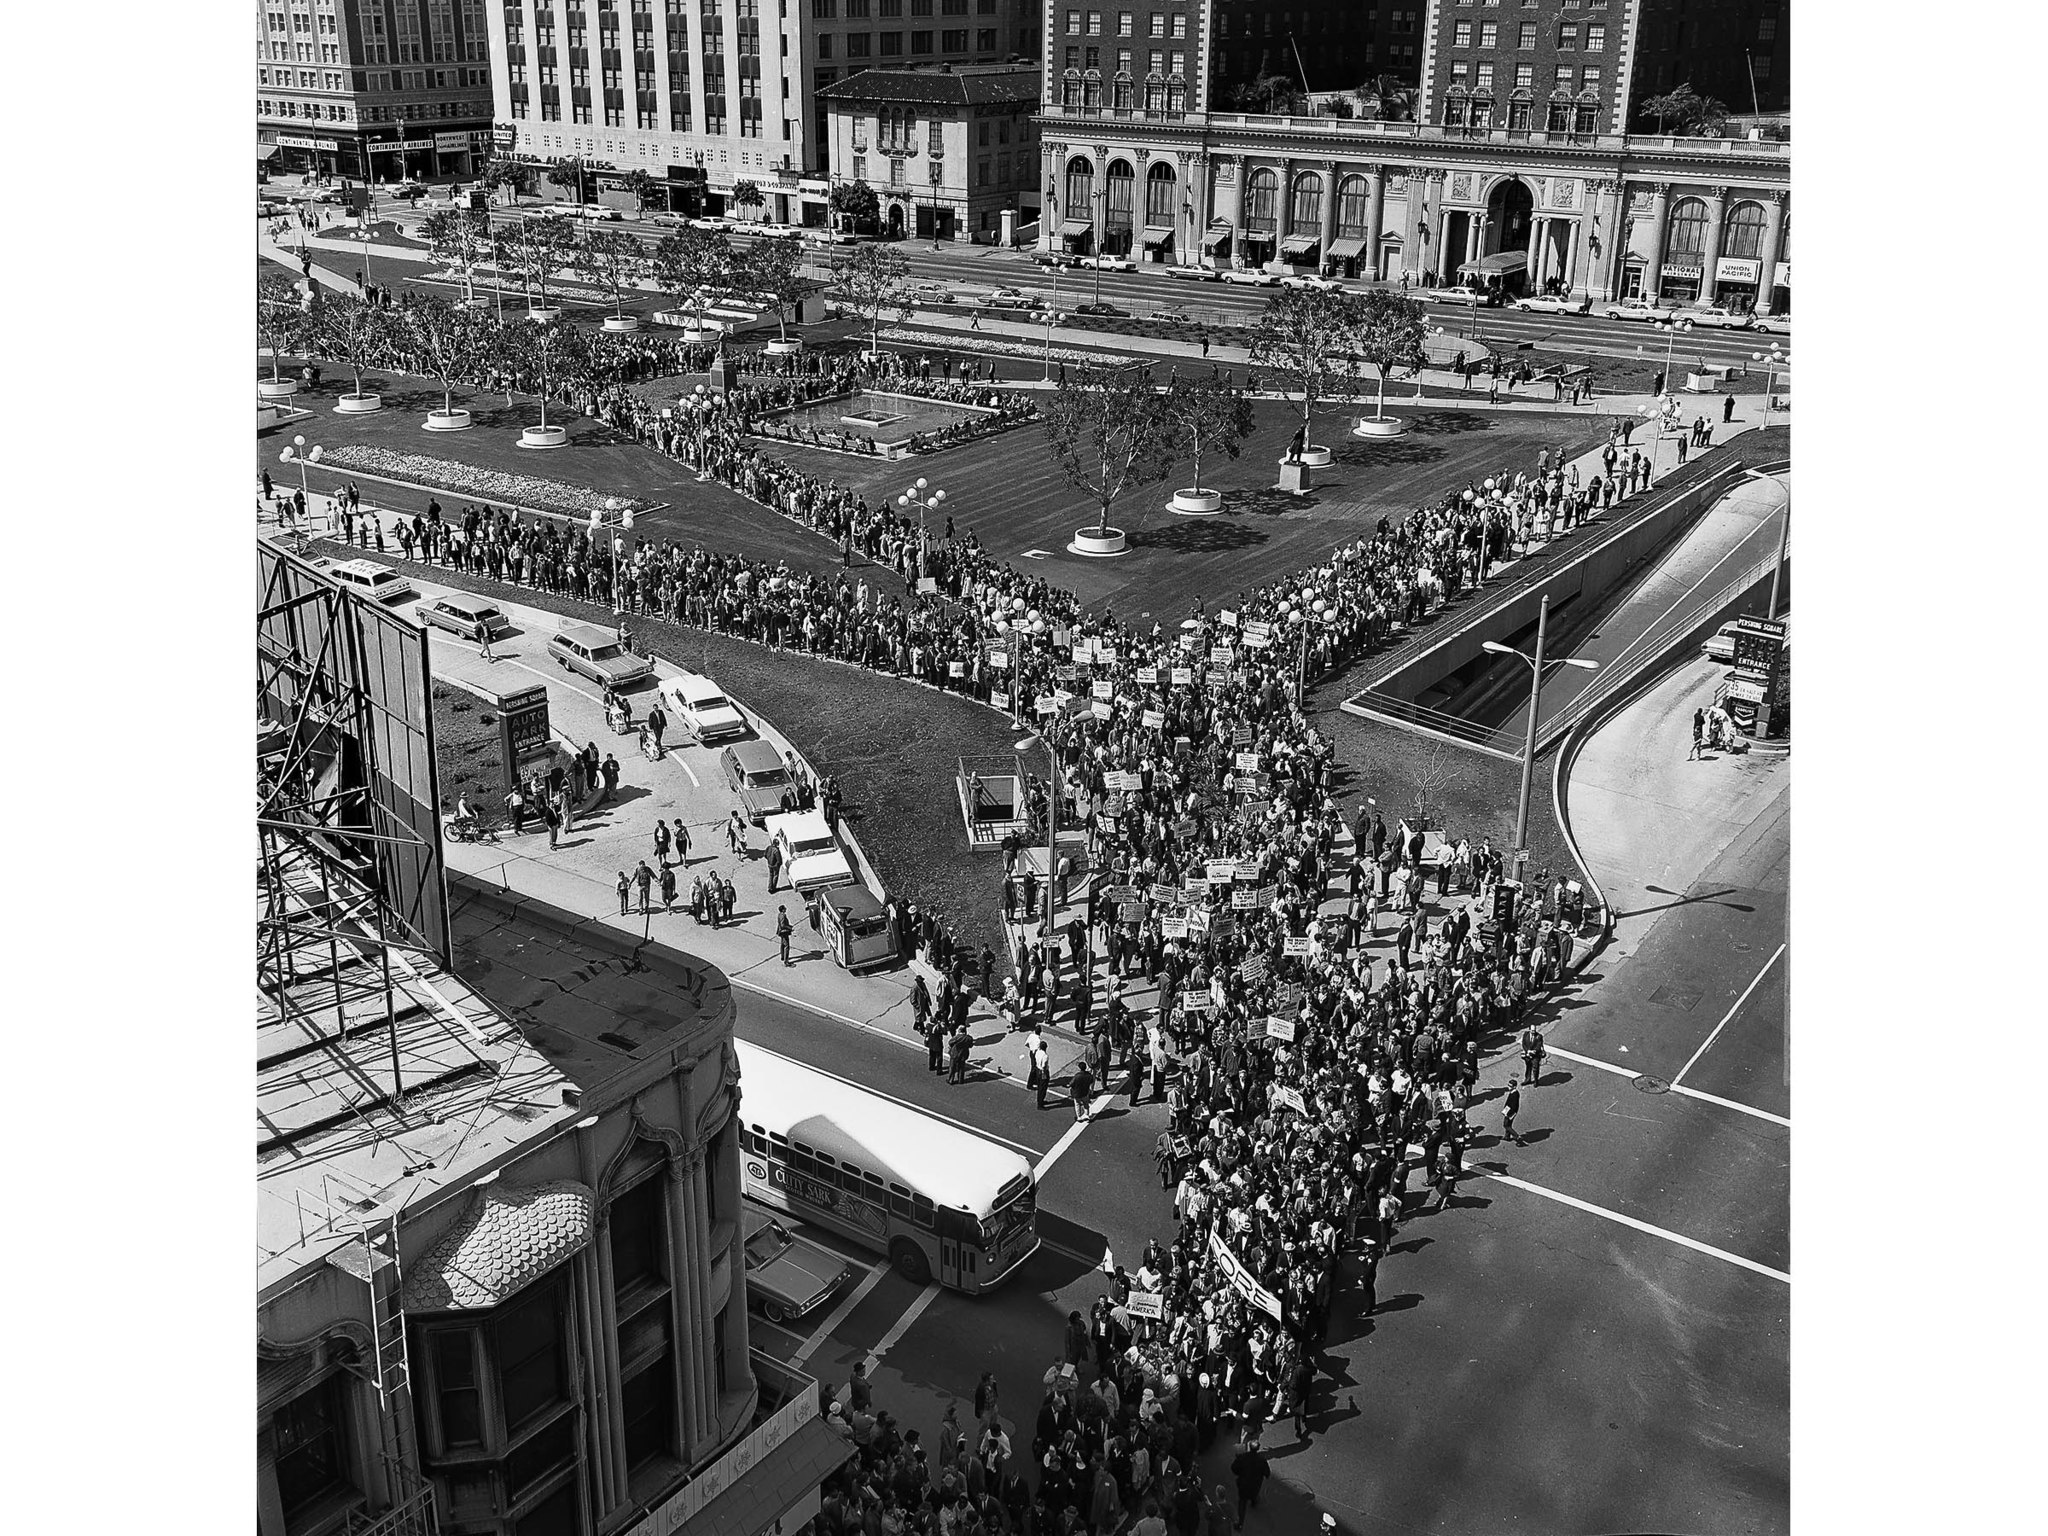 March 13, 1965: Civil Rights marchers leave Pershing Square at 5th and Hill in Los Angeles enroute t